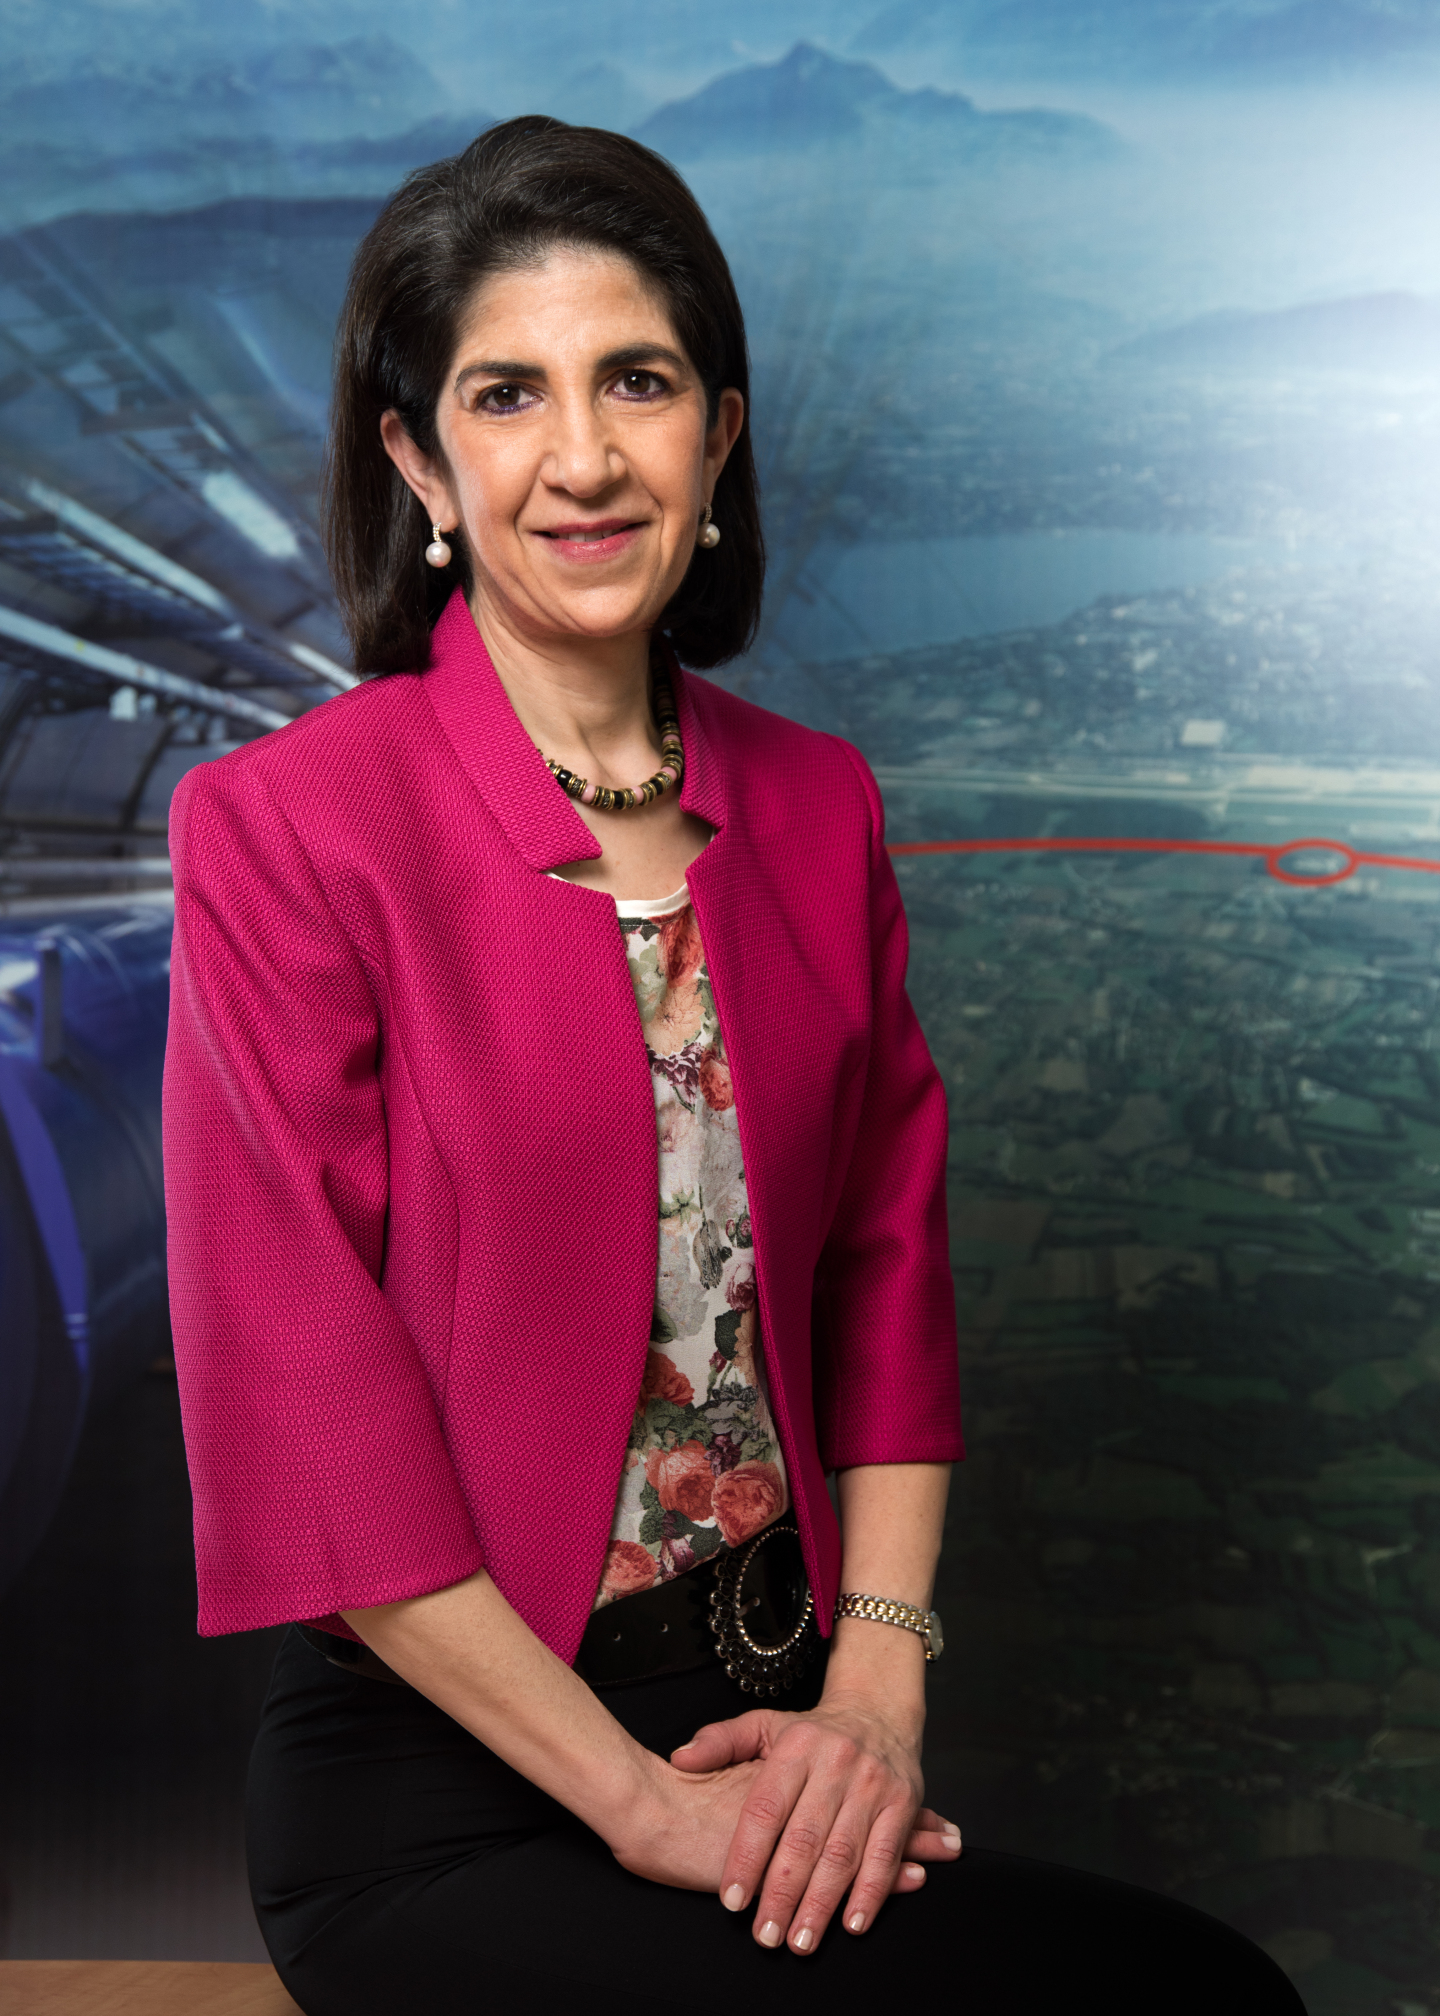 Portrait of Dr. Fabiola Gianotti - Incoming CERN Director General - December 2015